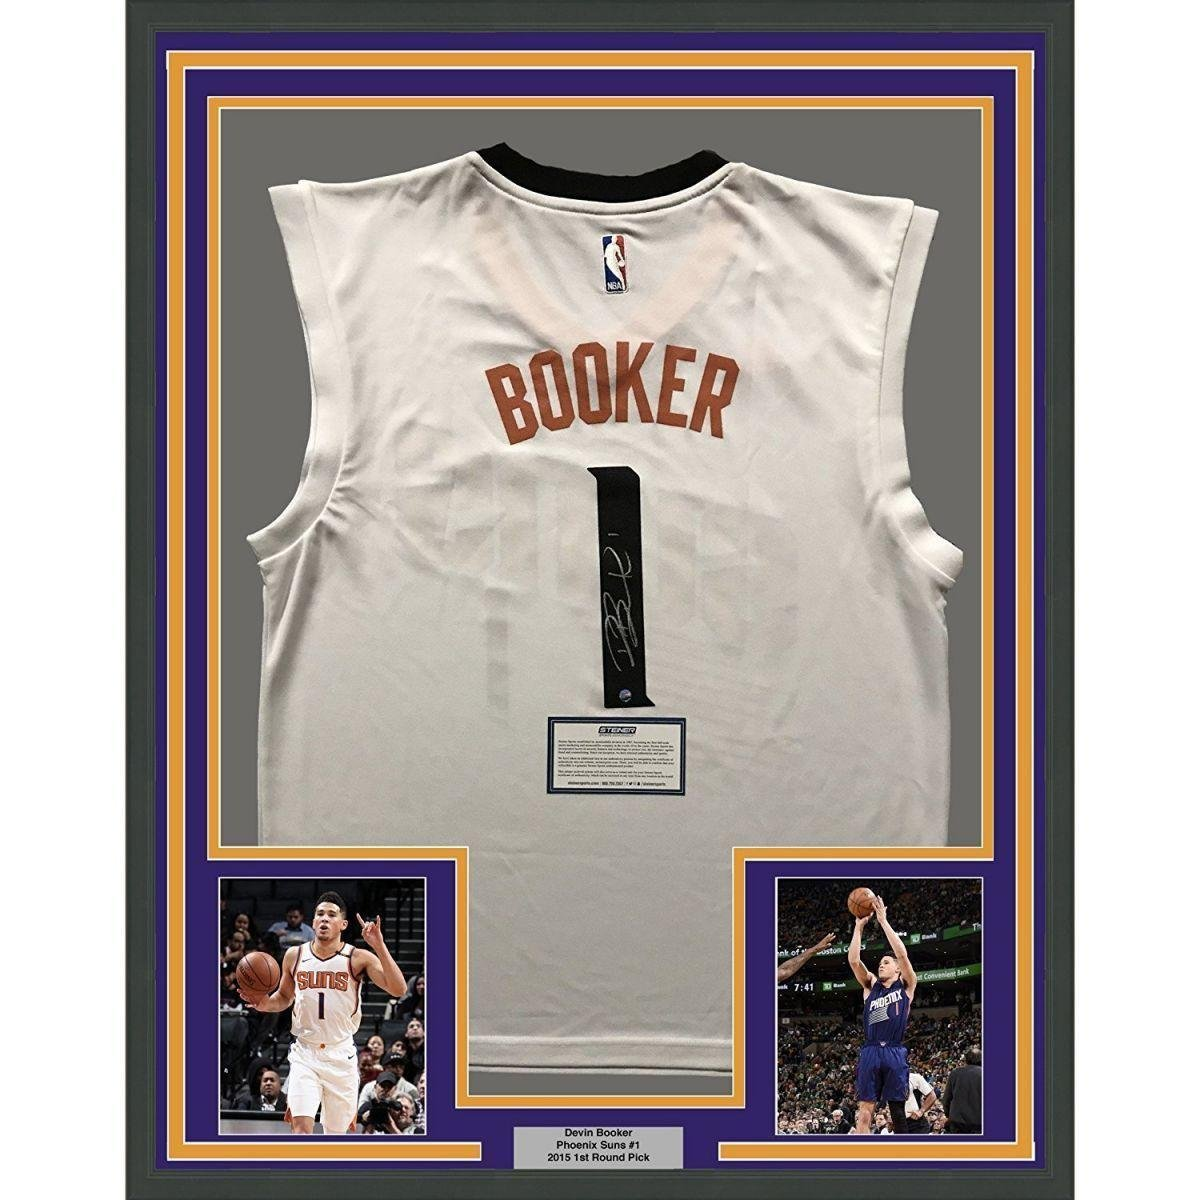 Signed Devin Booker Jersey - FRAMED 33x42 White COA - Steiner Sports  Certified - Autographed NBA Jerseys at Amazon s Sports Collectibles Store 4c6379cce